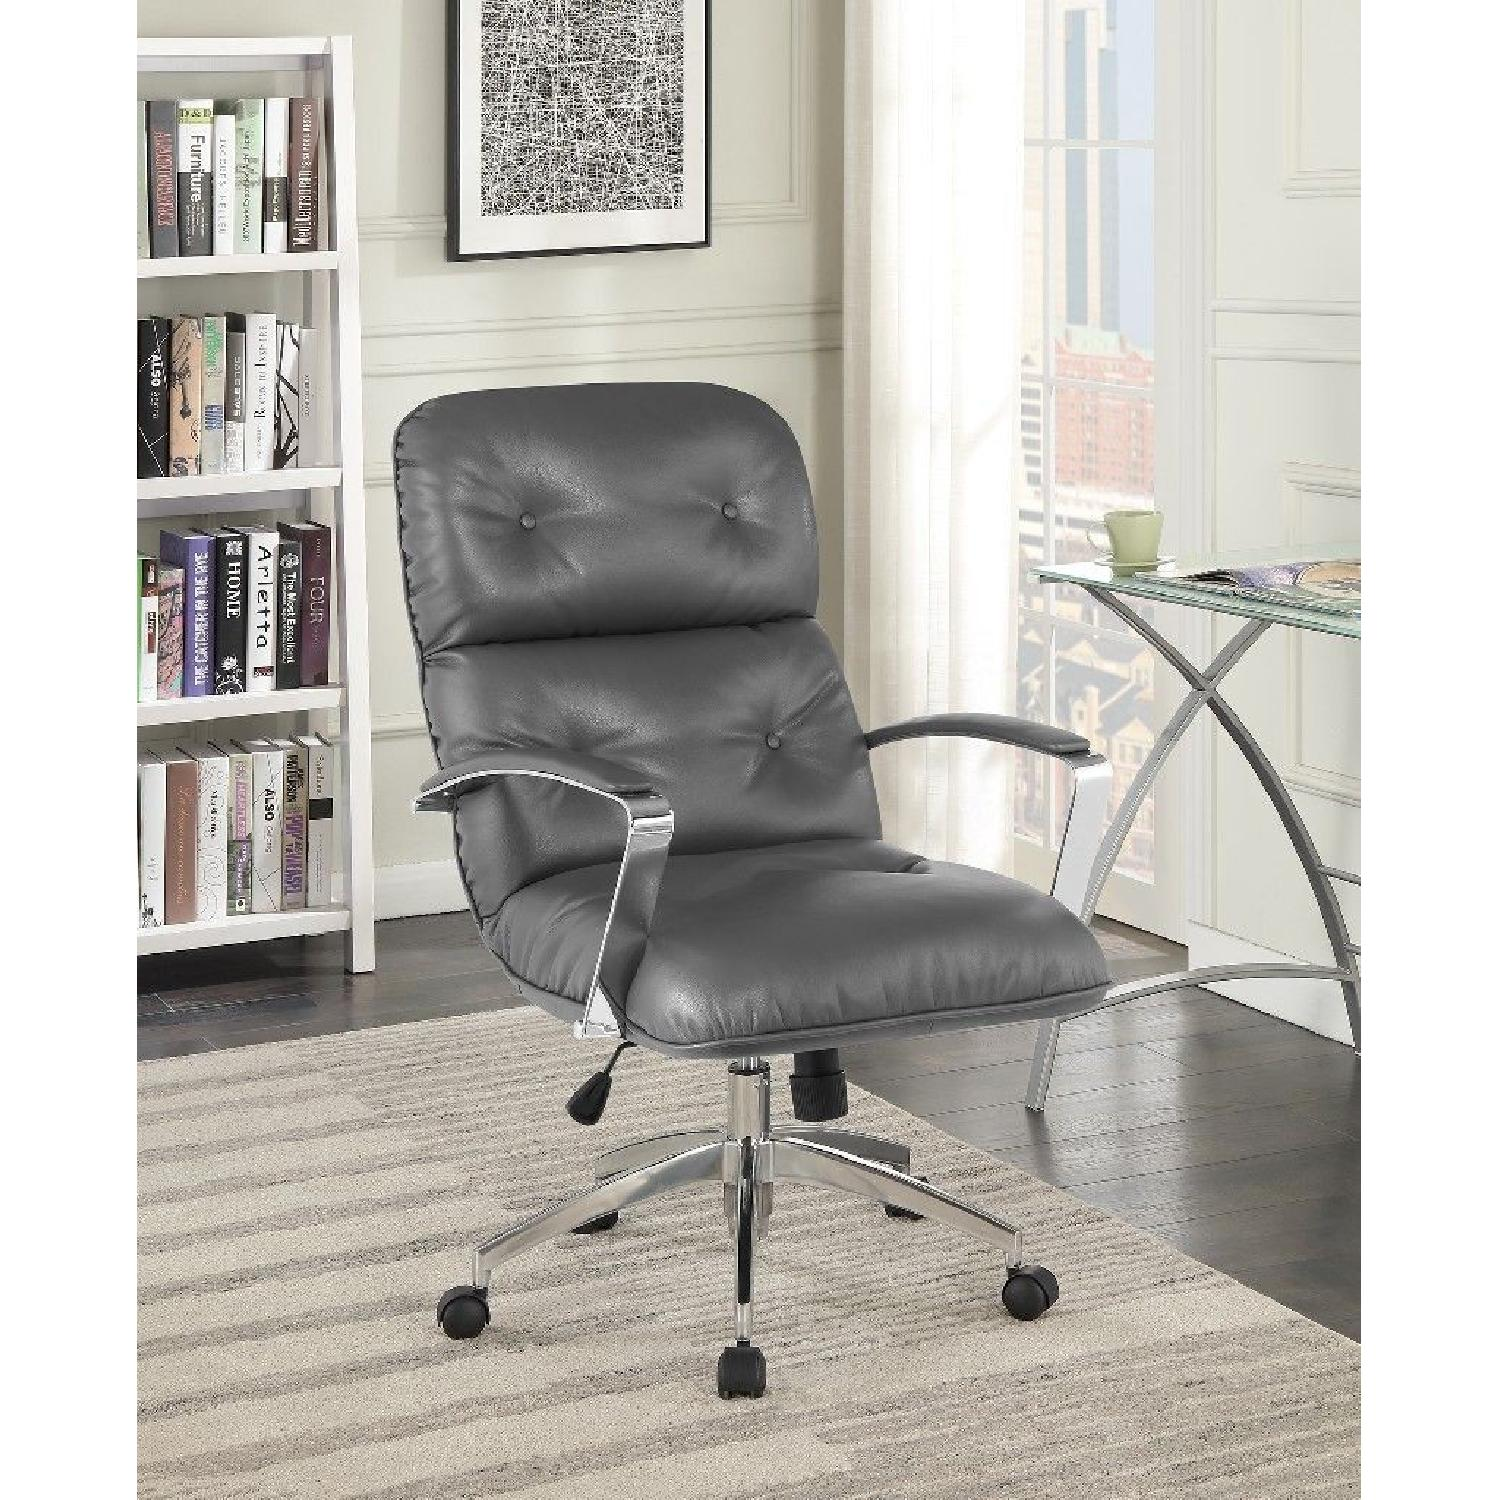 Modern Office Chair in Grey Leatherette w/ Chrome Base - image-2